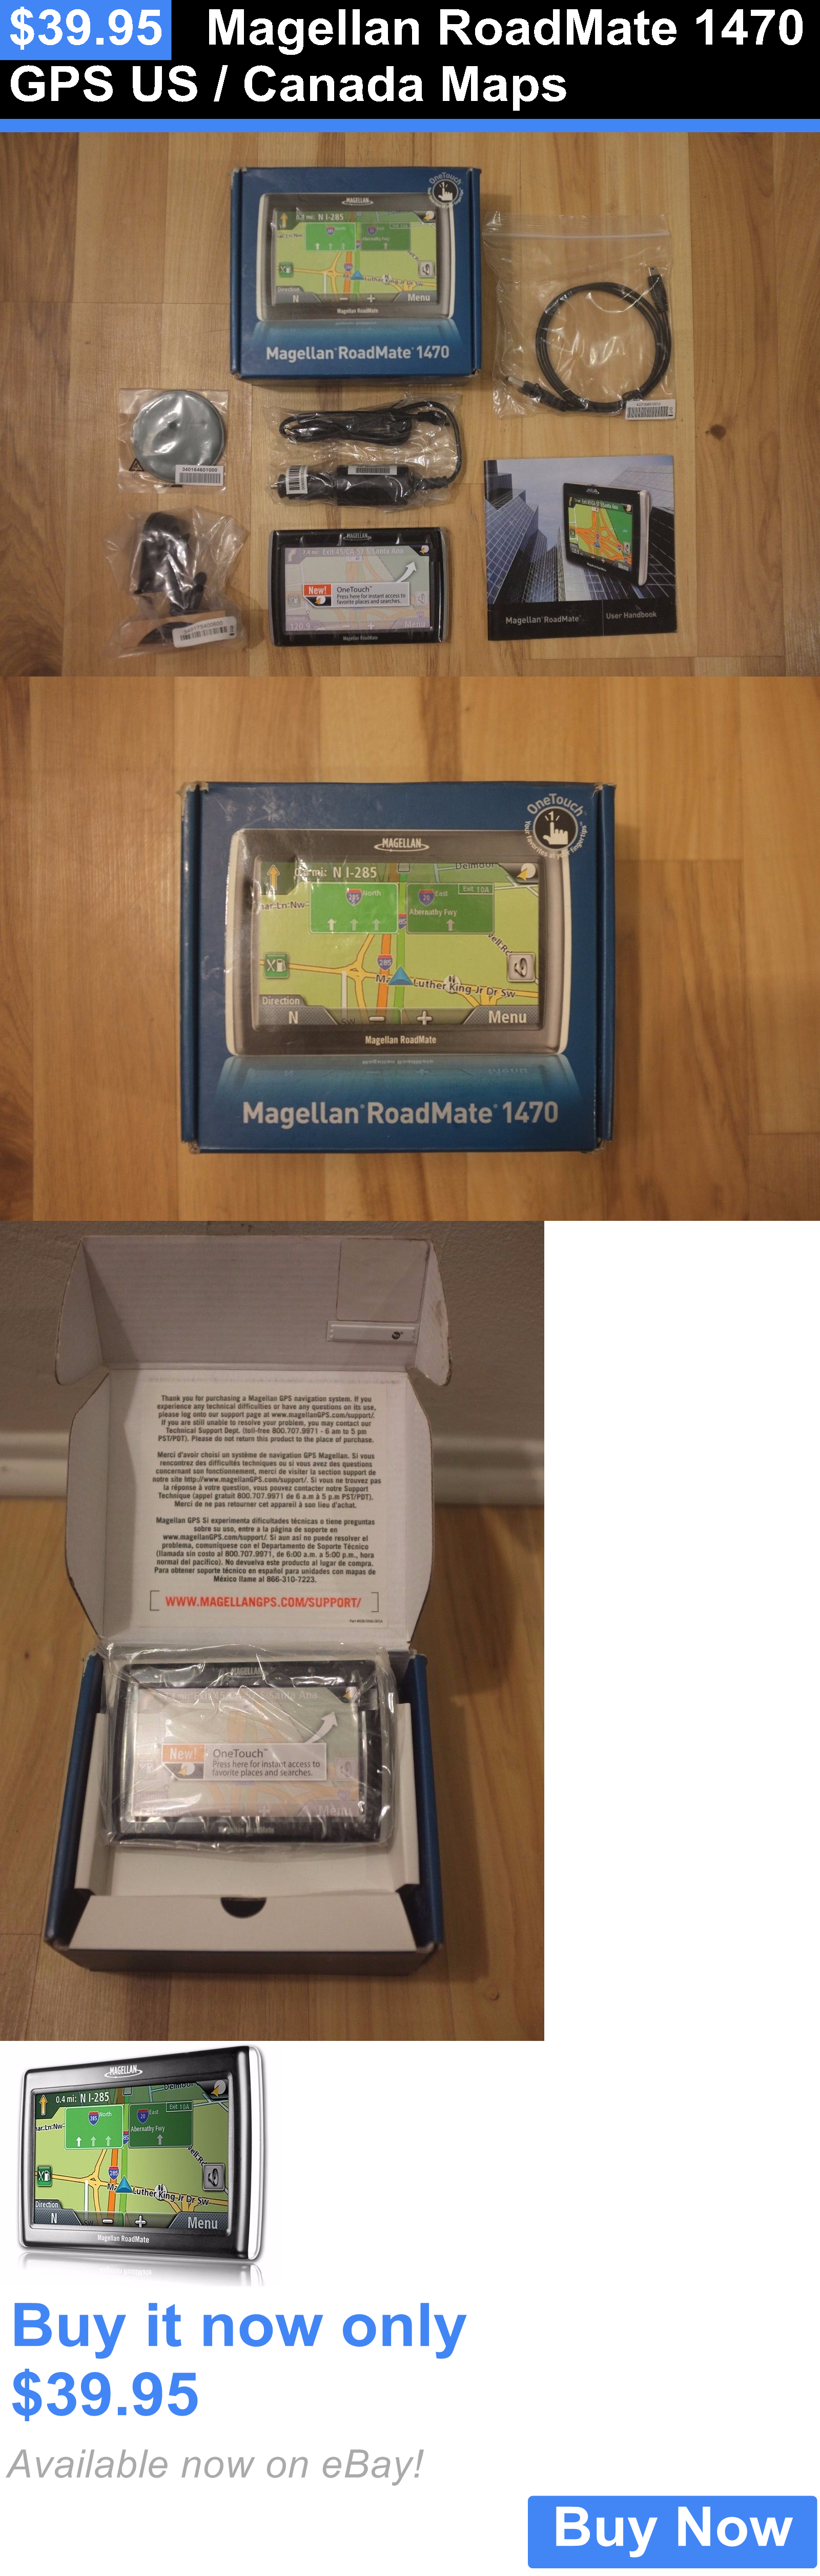 GPS Chargers And Batteries Magellan Roadmate Gps Us Canada - How to use both us and canada maps in gps